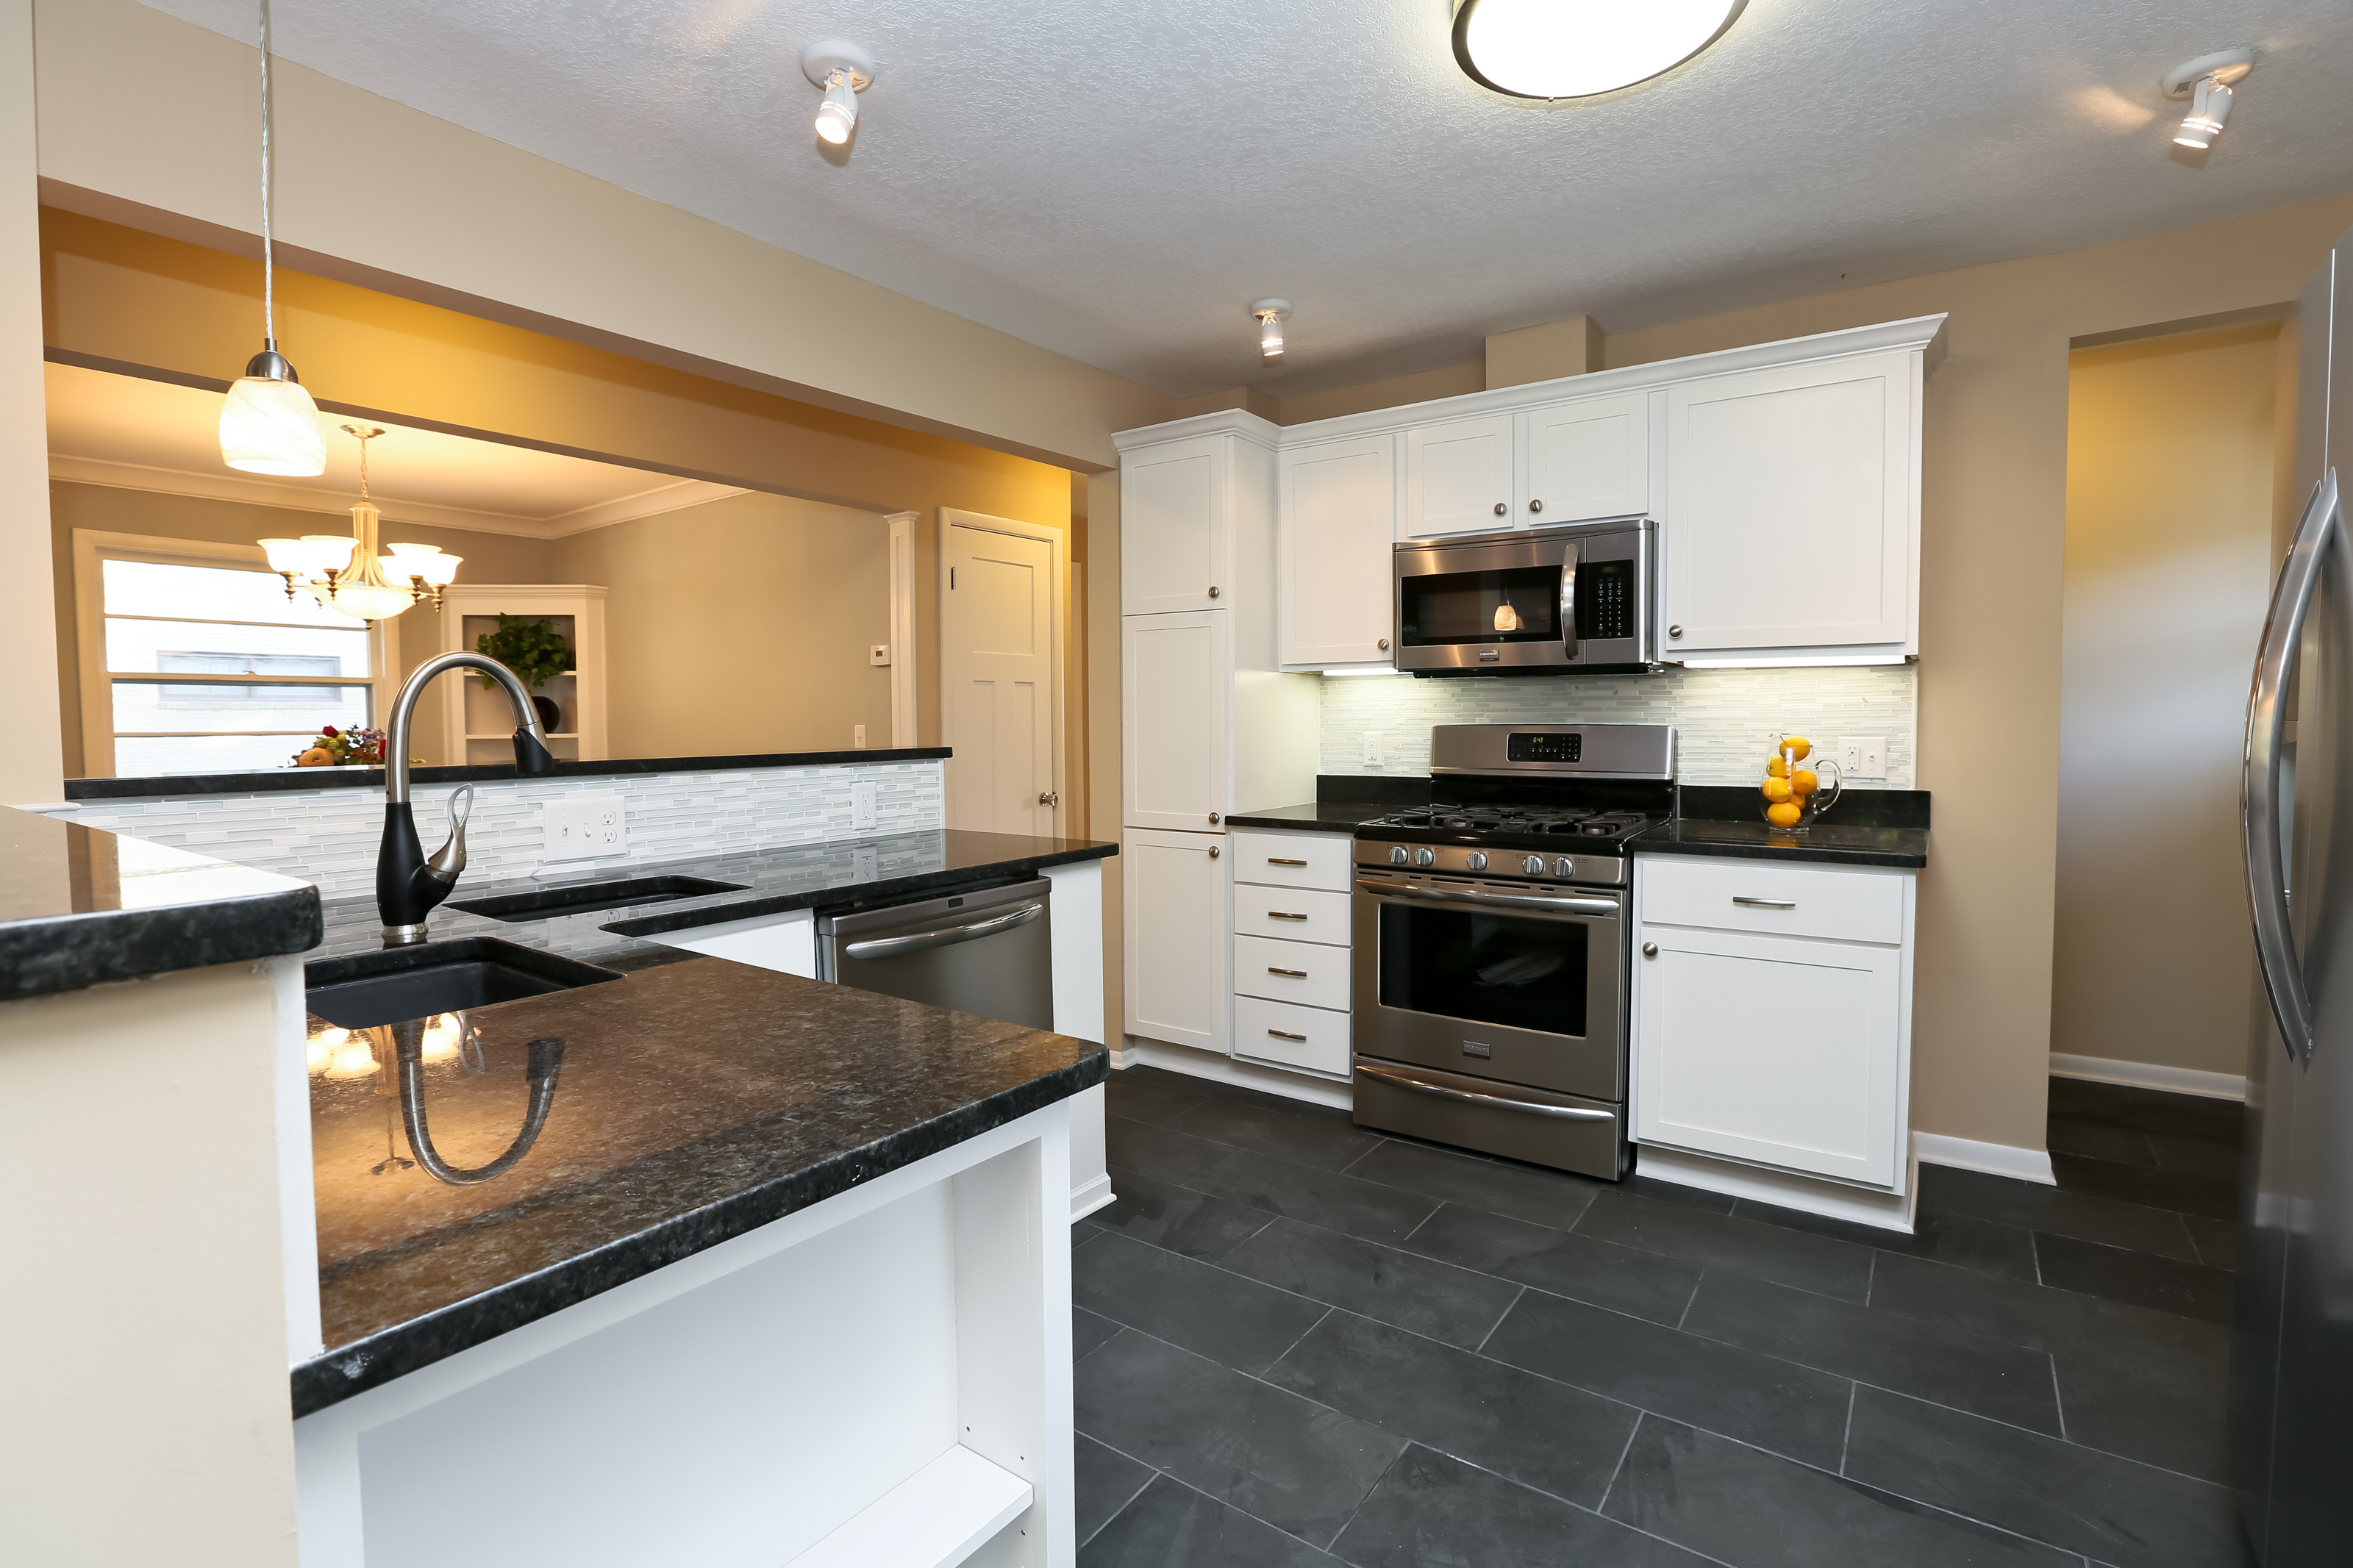 average remodeling costs and return on investment average kitchen remodel